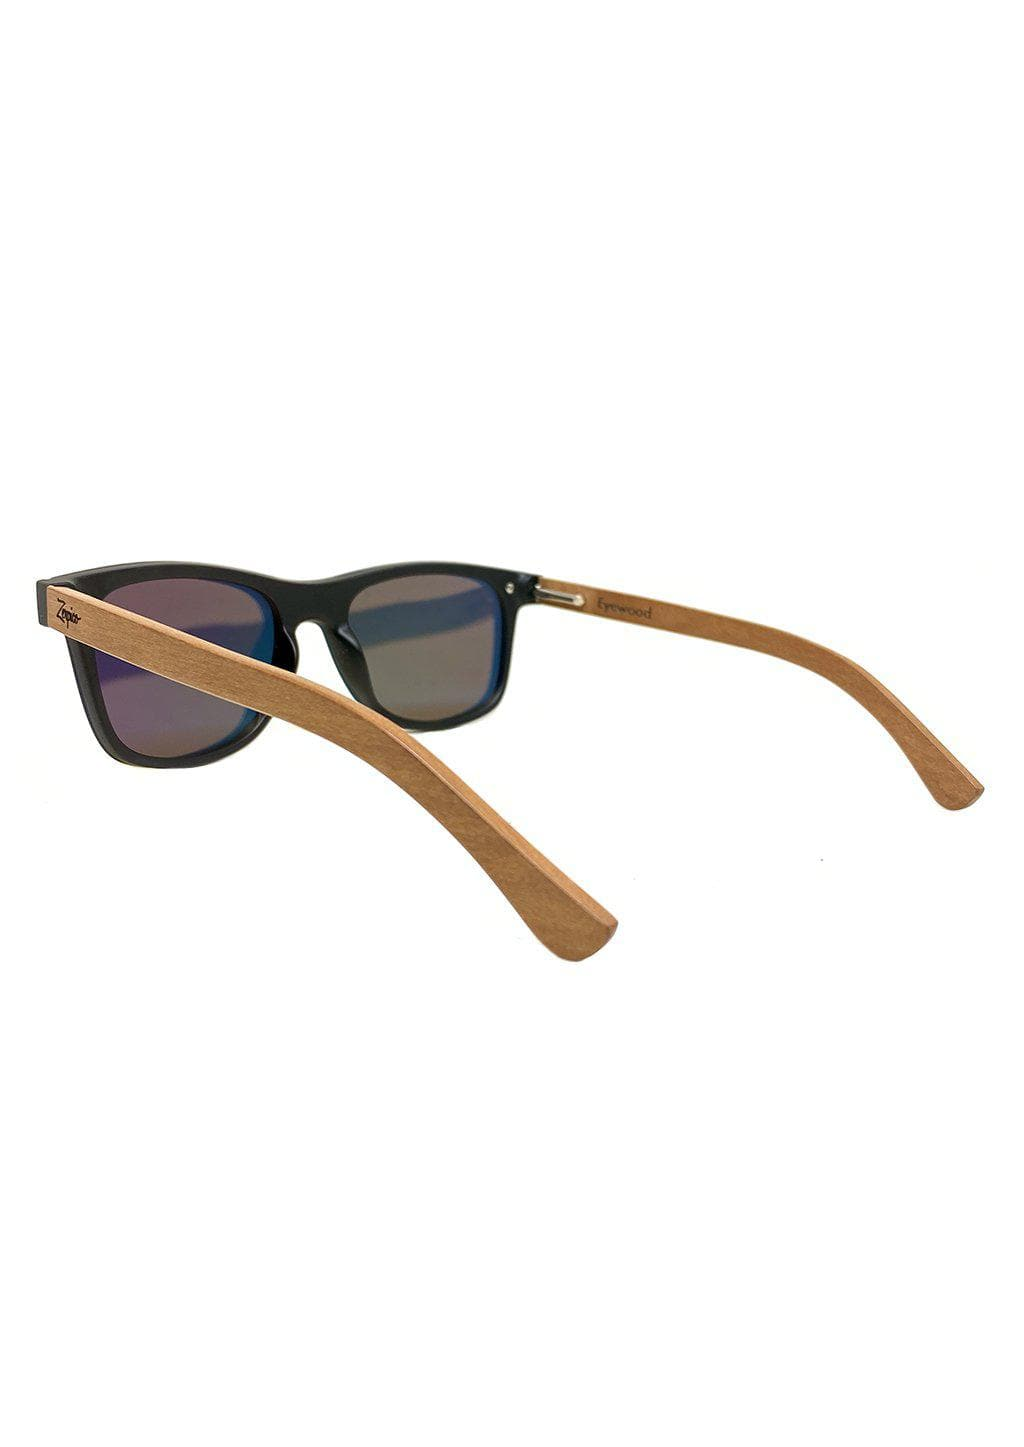 Eyewood tomorrow is our modern cool take on classic models. This is Scorpius with yellow mirror lenses. Nice wooden sunglasses with details from the back.